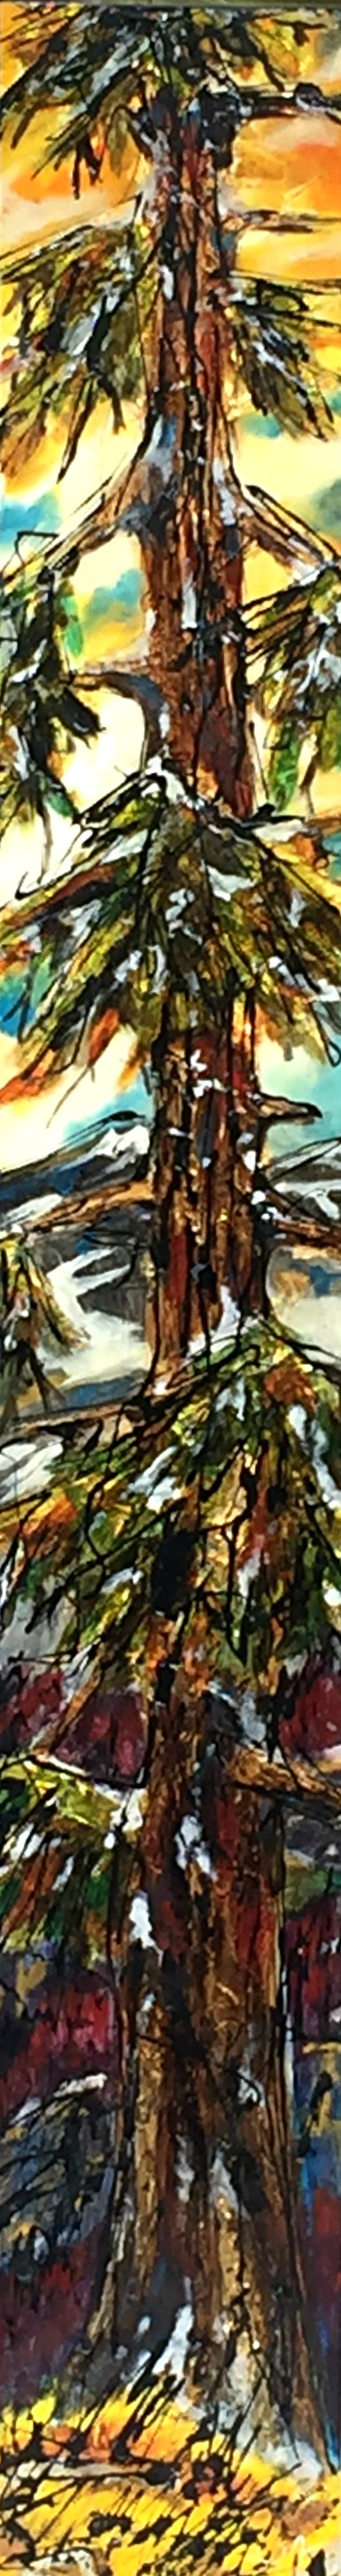 We Didn't Talk, mixed media tree painting by David Zimmerman | Effusion Art Gallery + Cast Glass Studio, Invermere BC